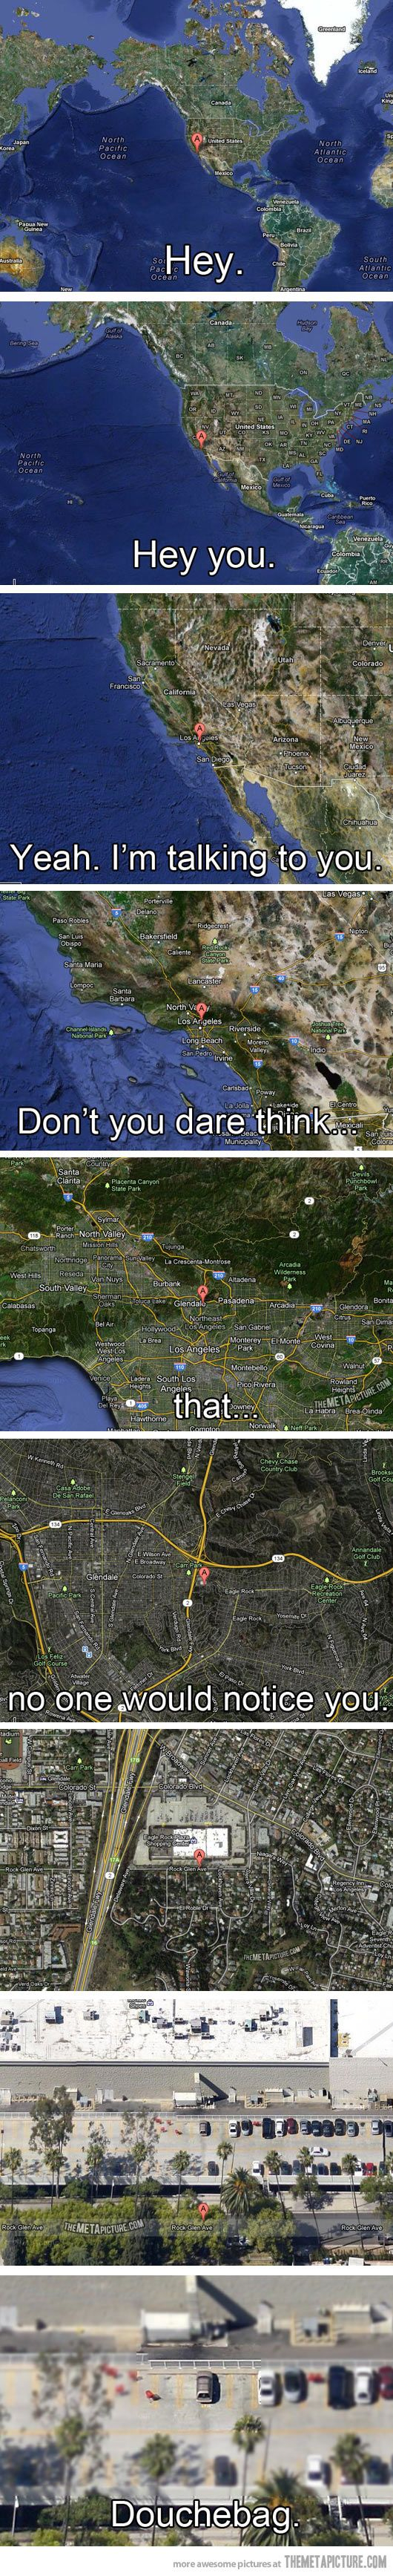 Hey you down there…: Giggle, Google Earth, Goggle Maps, Cant Stop Laughing, People S Children, Funny Stuff, Hate People, Can'T Stop Laughing